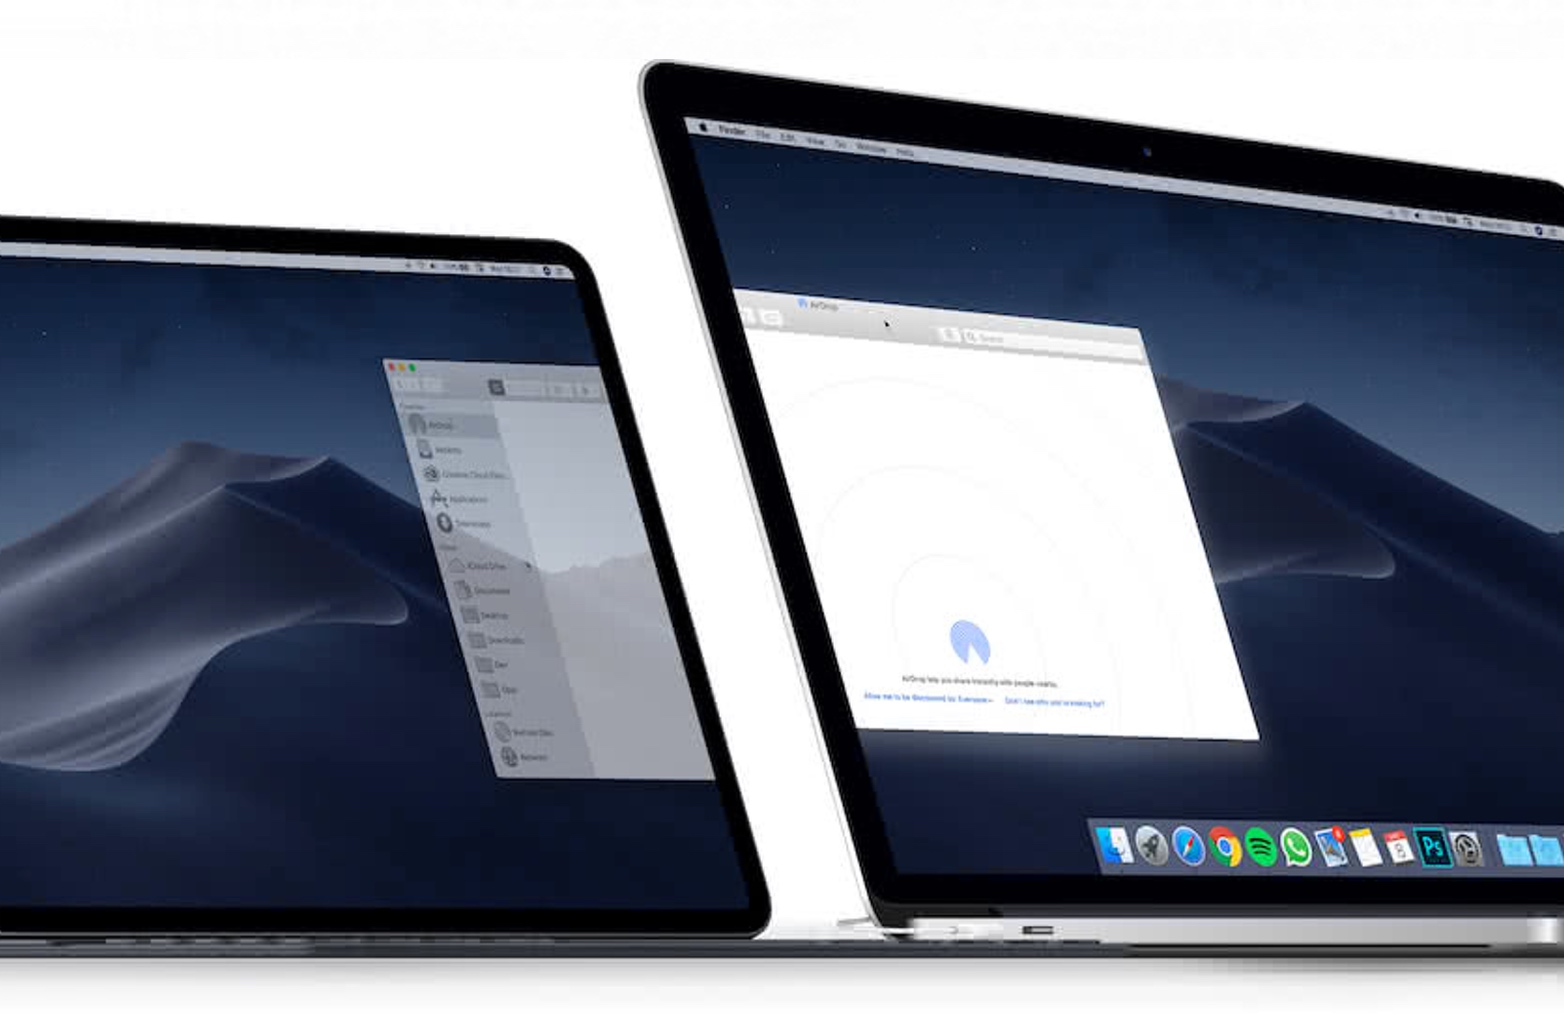 Increase your workspace with Duet Display